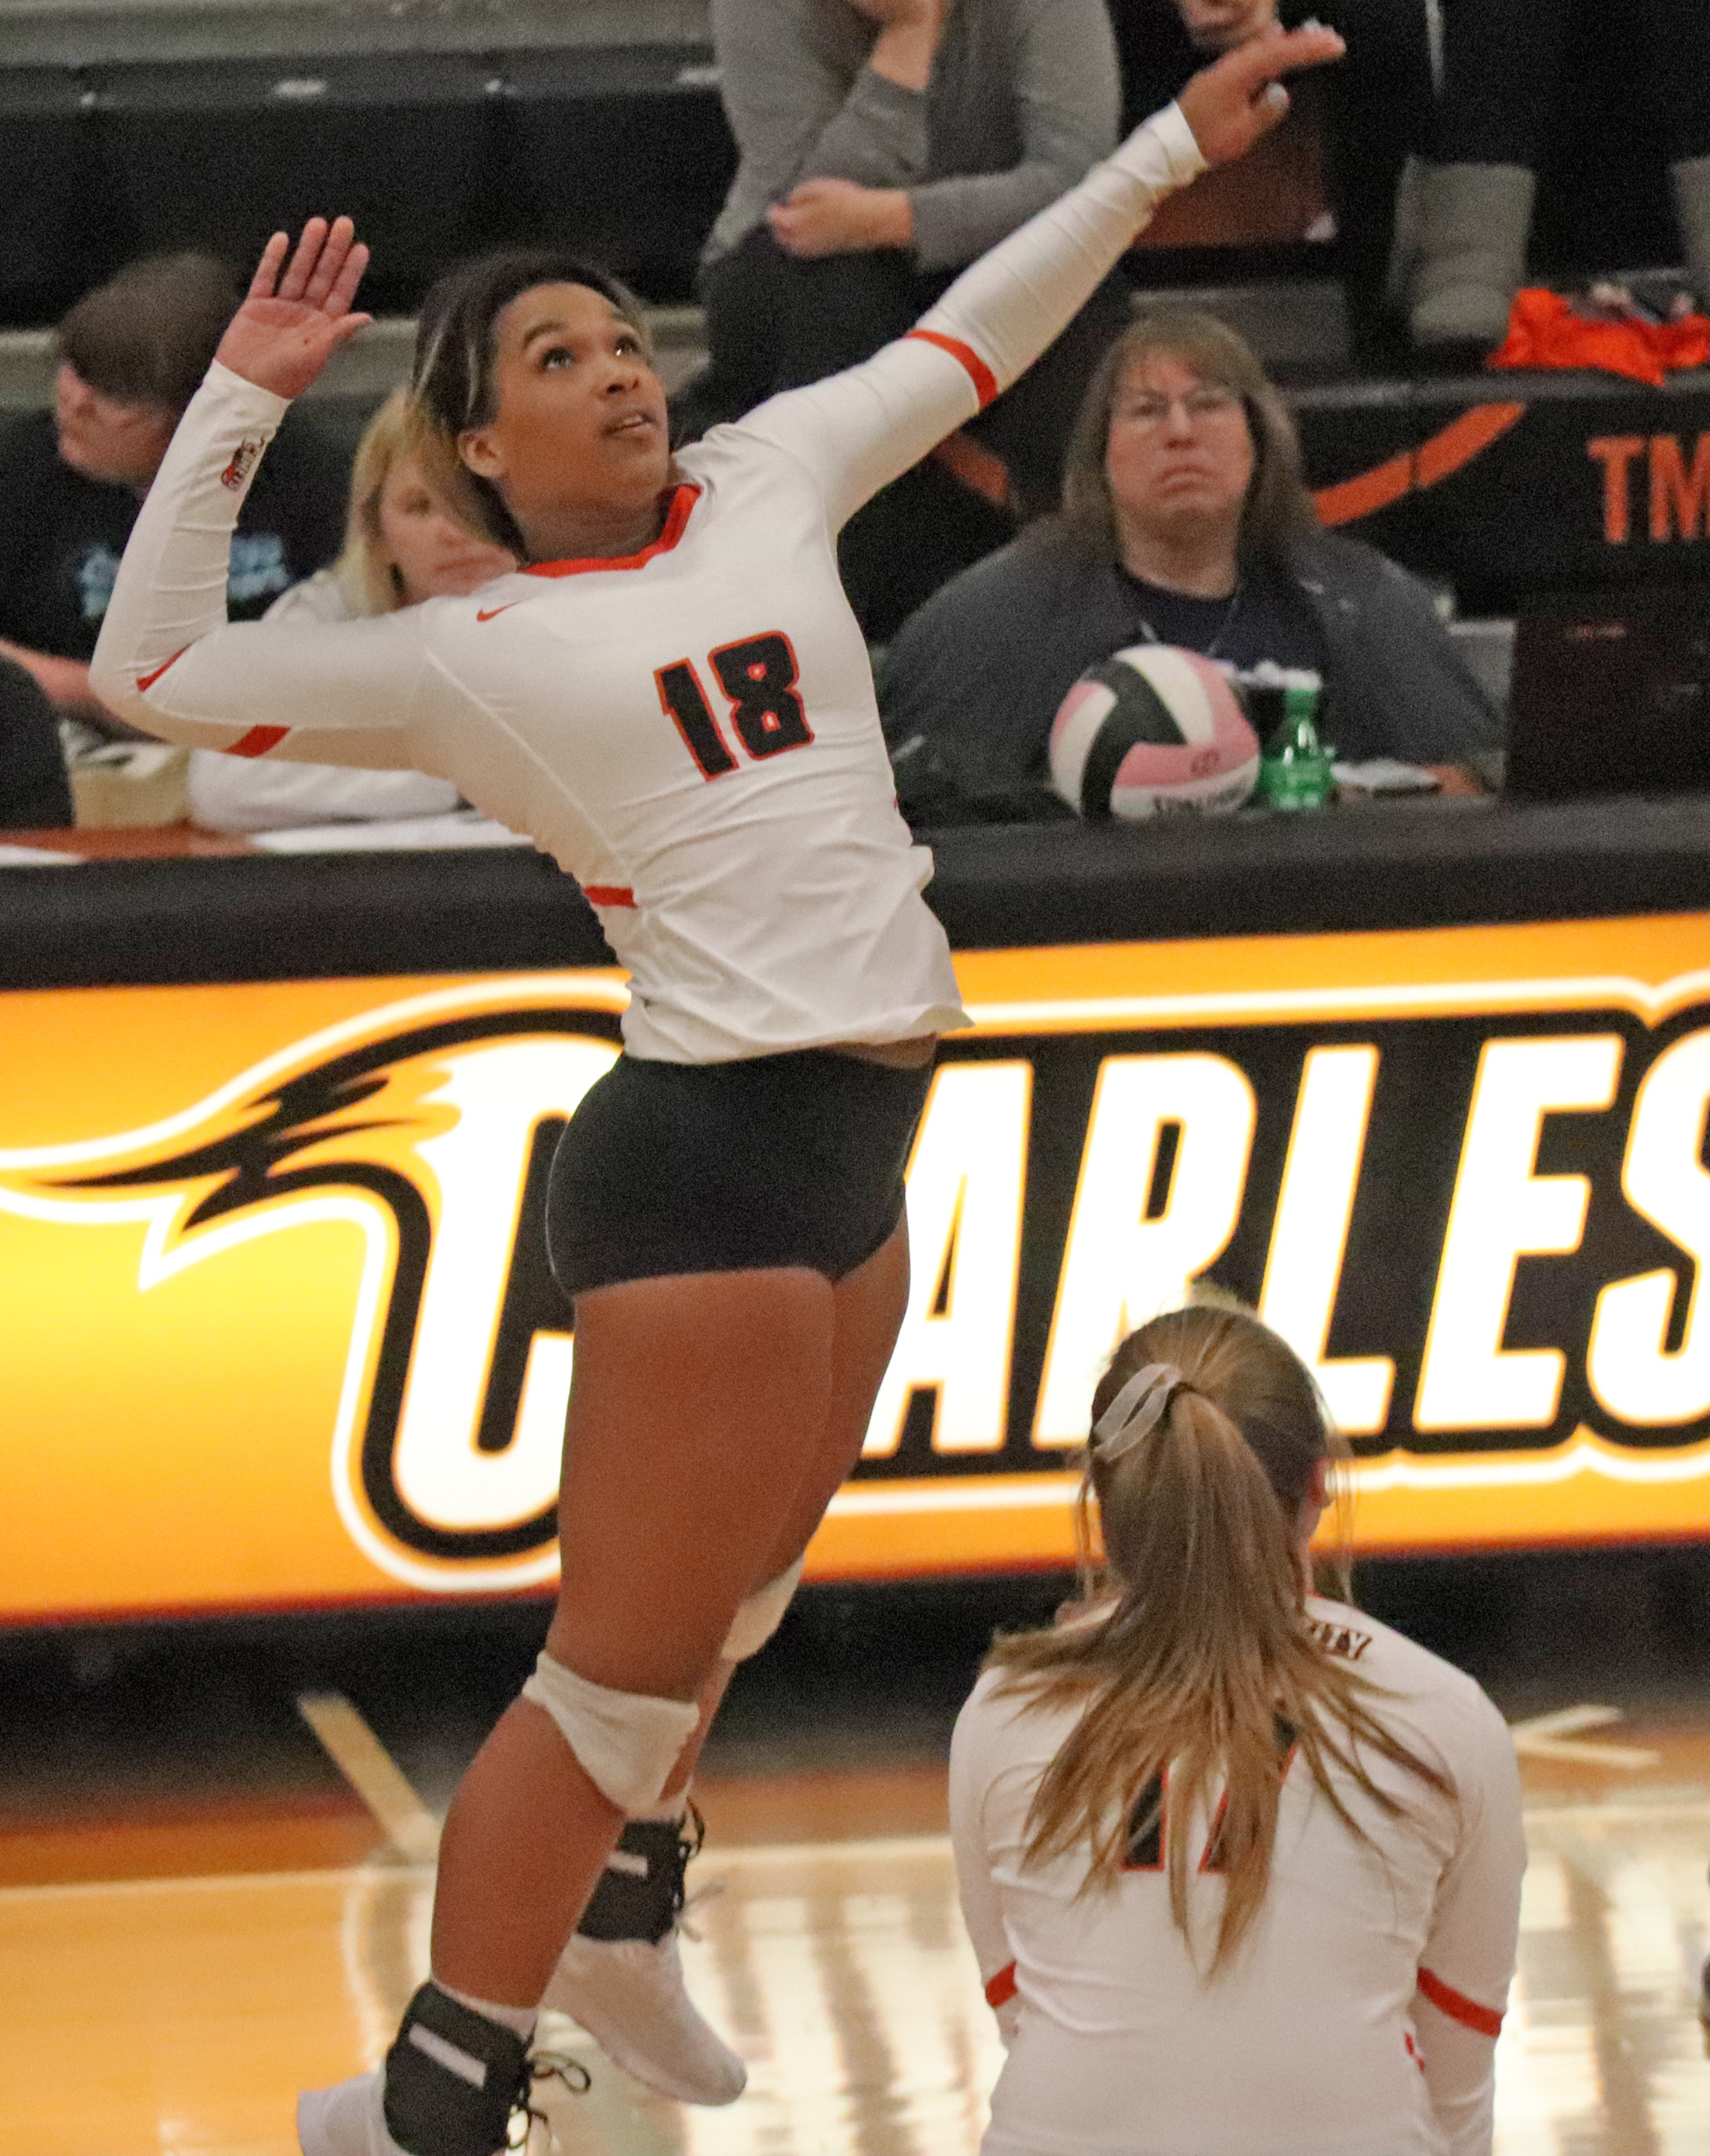 Comets sweep Huskies on VB 'Senior Night'